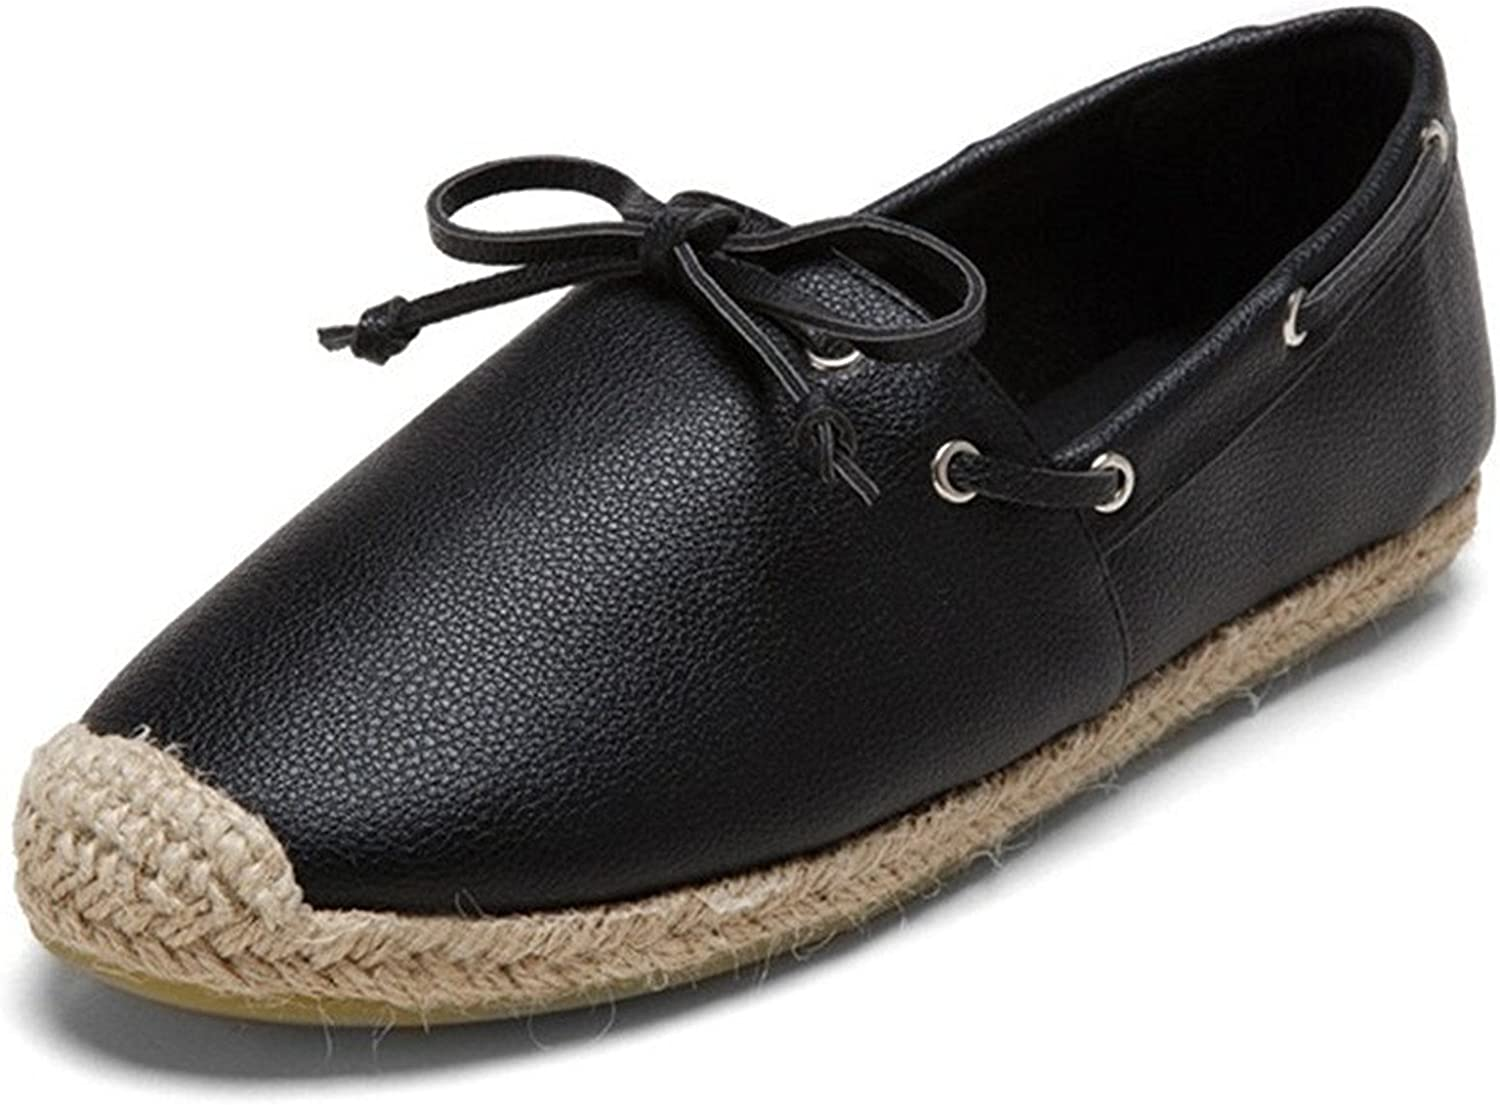 Pilusooou Functional Womens Ladies Casual Leather Loafers Flat shoes Moccasin